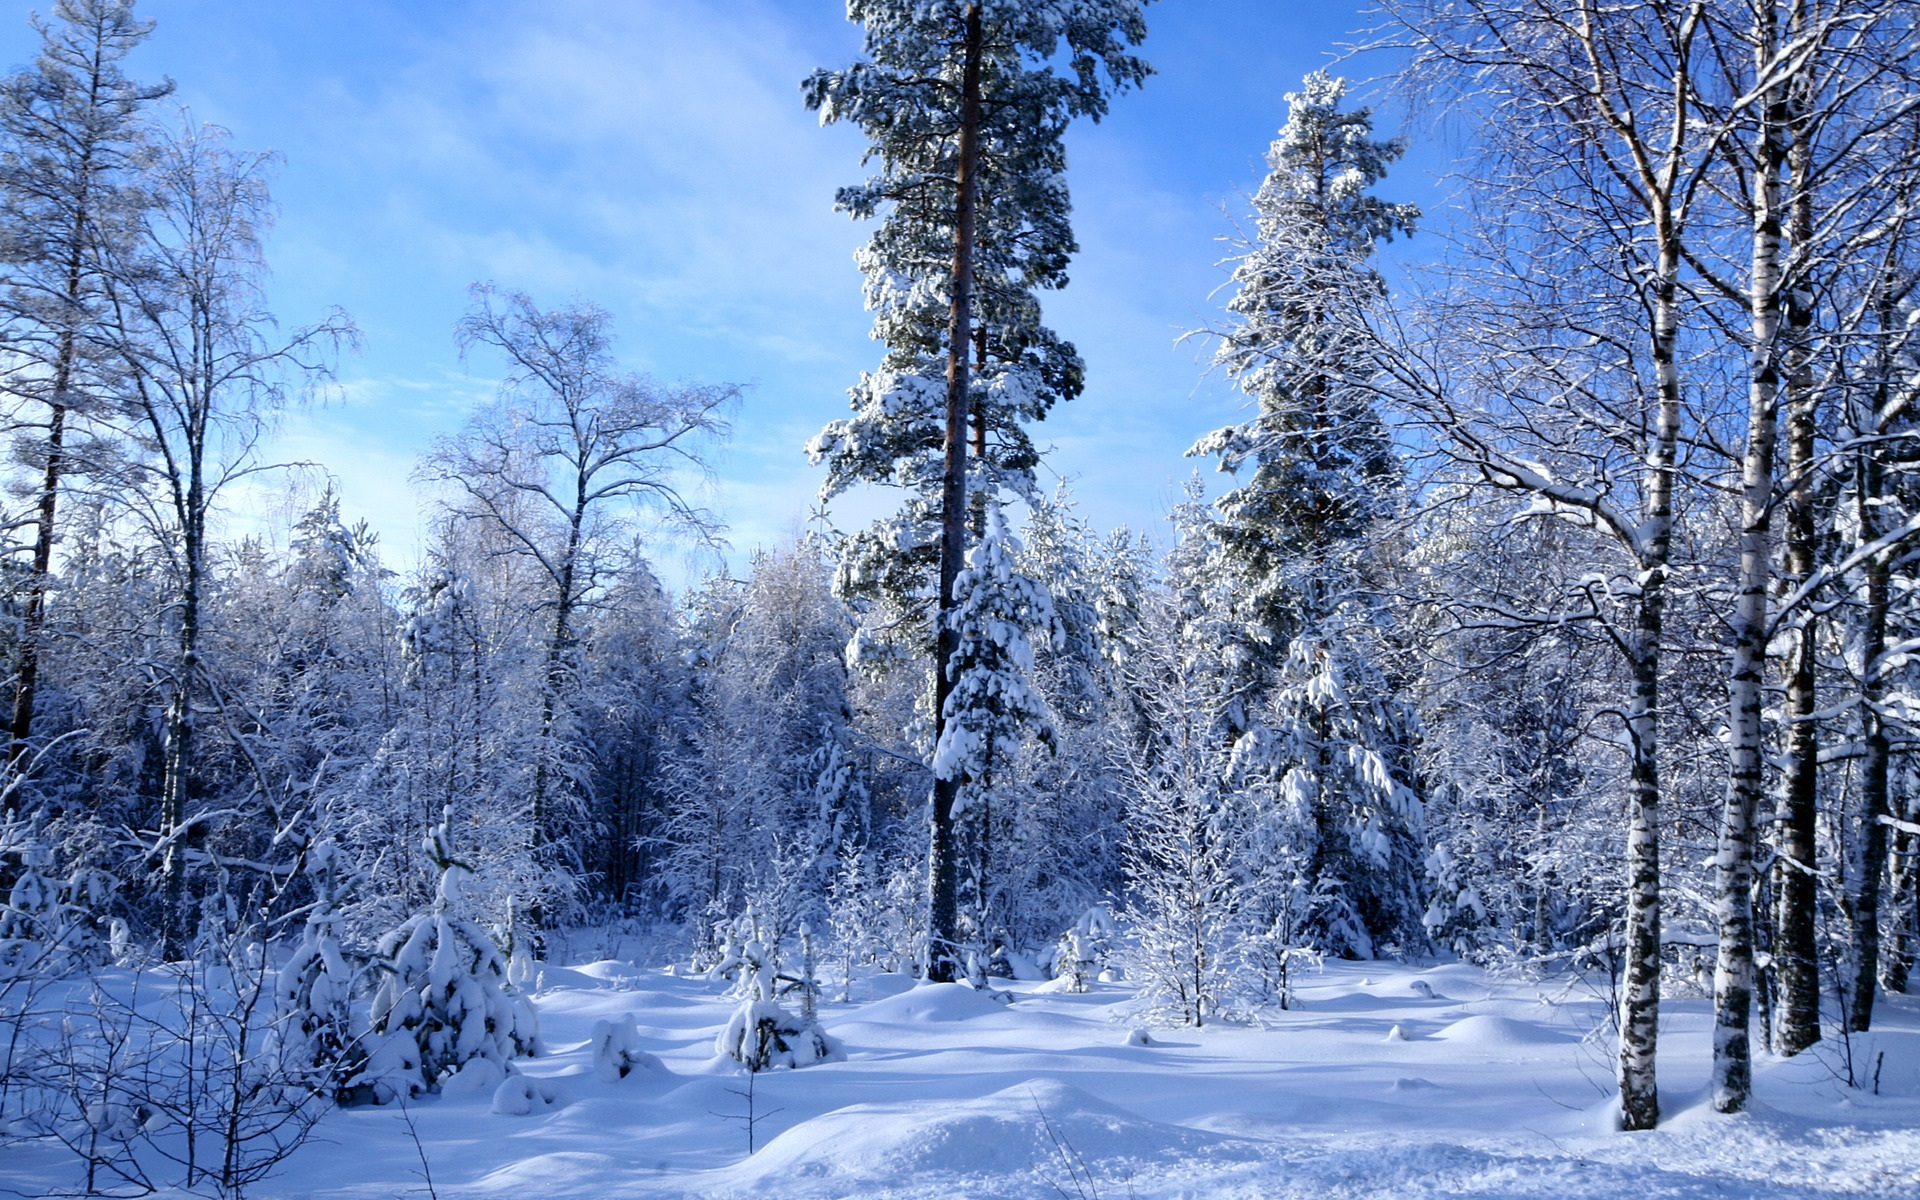 snowy forest white tree branches winter themed 多くの冬の森の雪 壁紙 1920x1200 壁紙ダウンロード ja best wallpaper net 255